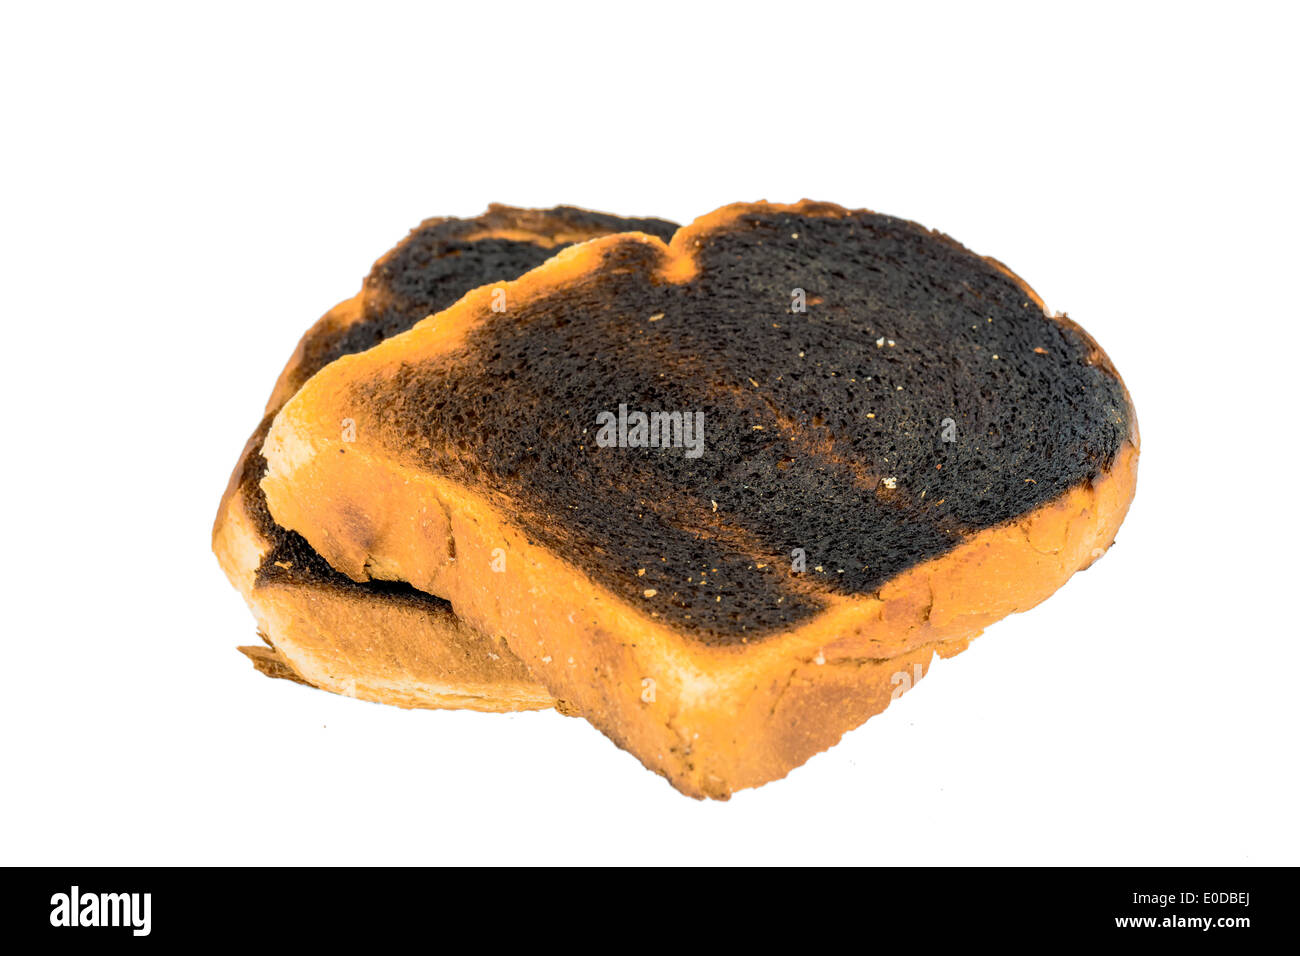 Toast bread became burntly. Burntly toast discs with the breakfast., Toastbrot wurde beim toasten verbrannt. - Stock Image